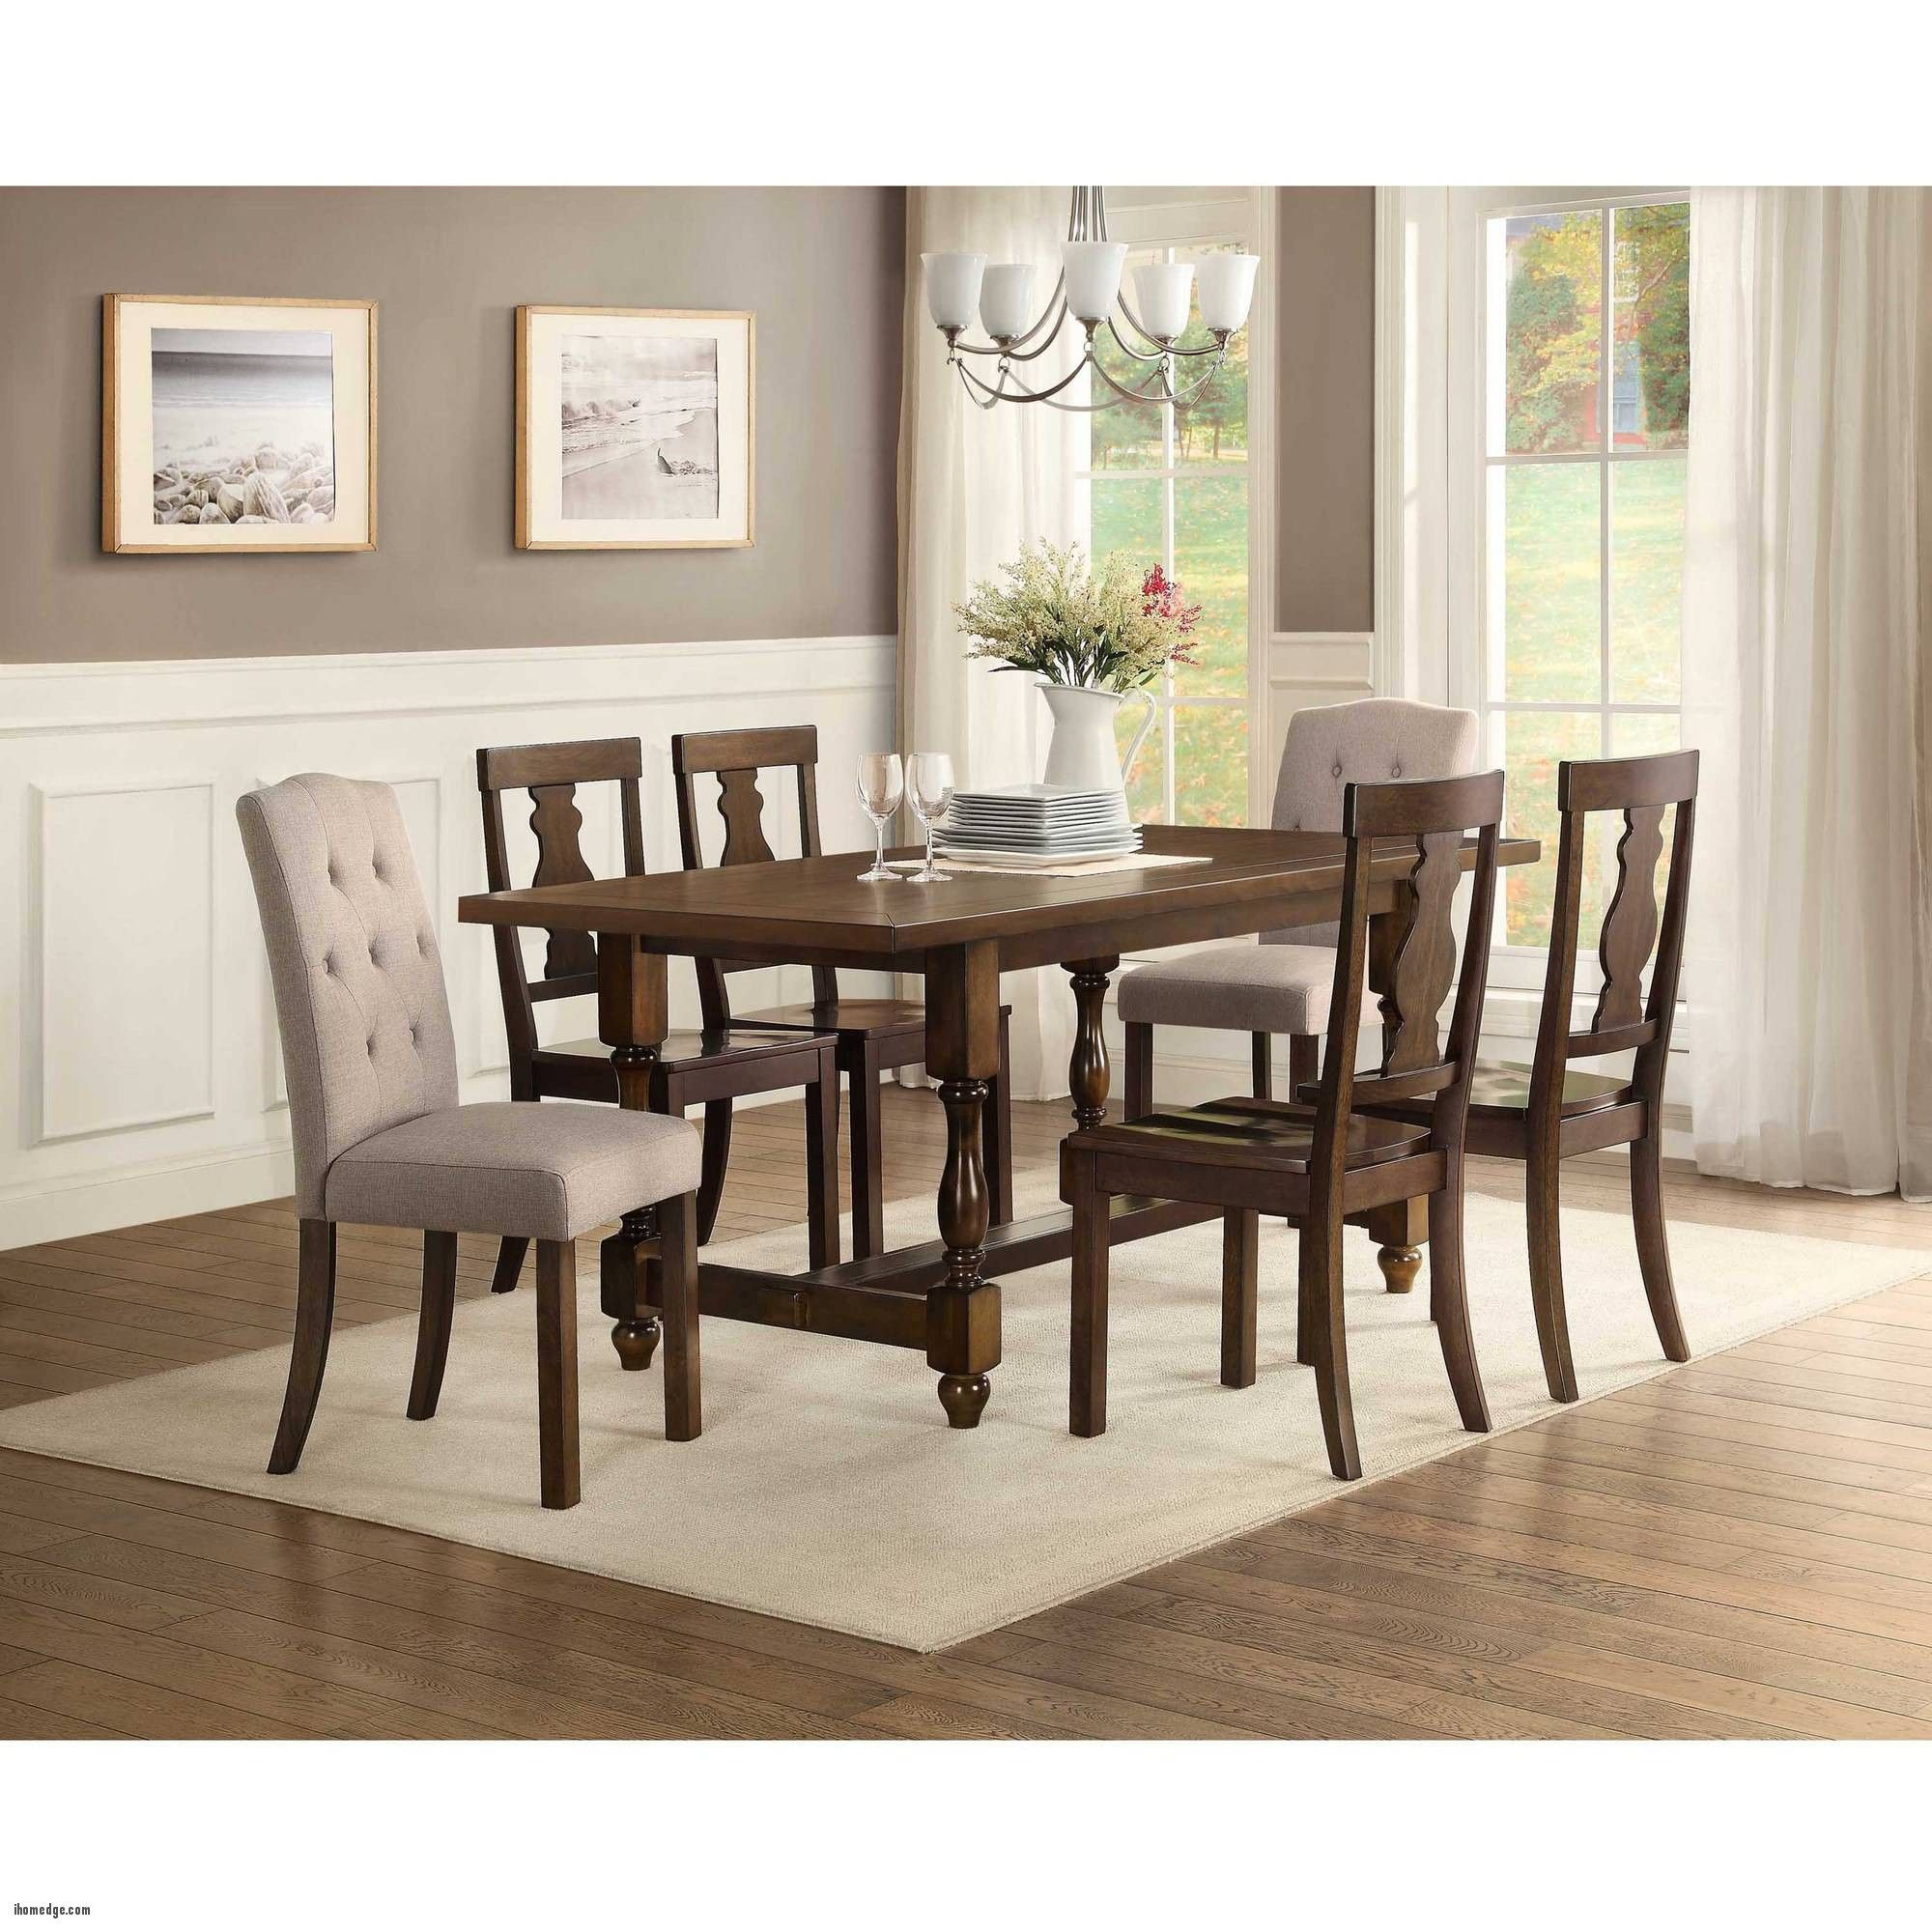 Fine Best Of Small Kitchen Table Small Kitchen Table With Two Chairs Walmart Http Ihomedge Com Small Family Dining Table Dining Chairs Wood Dining Chairs